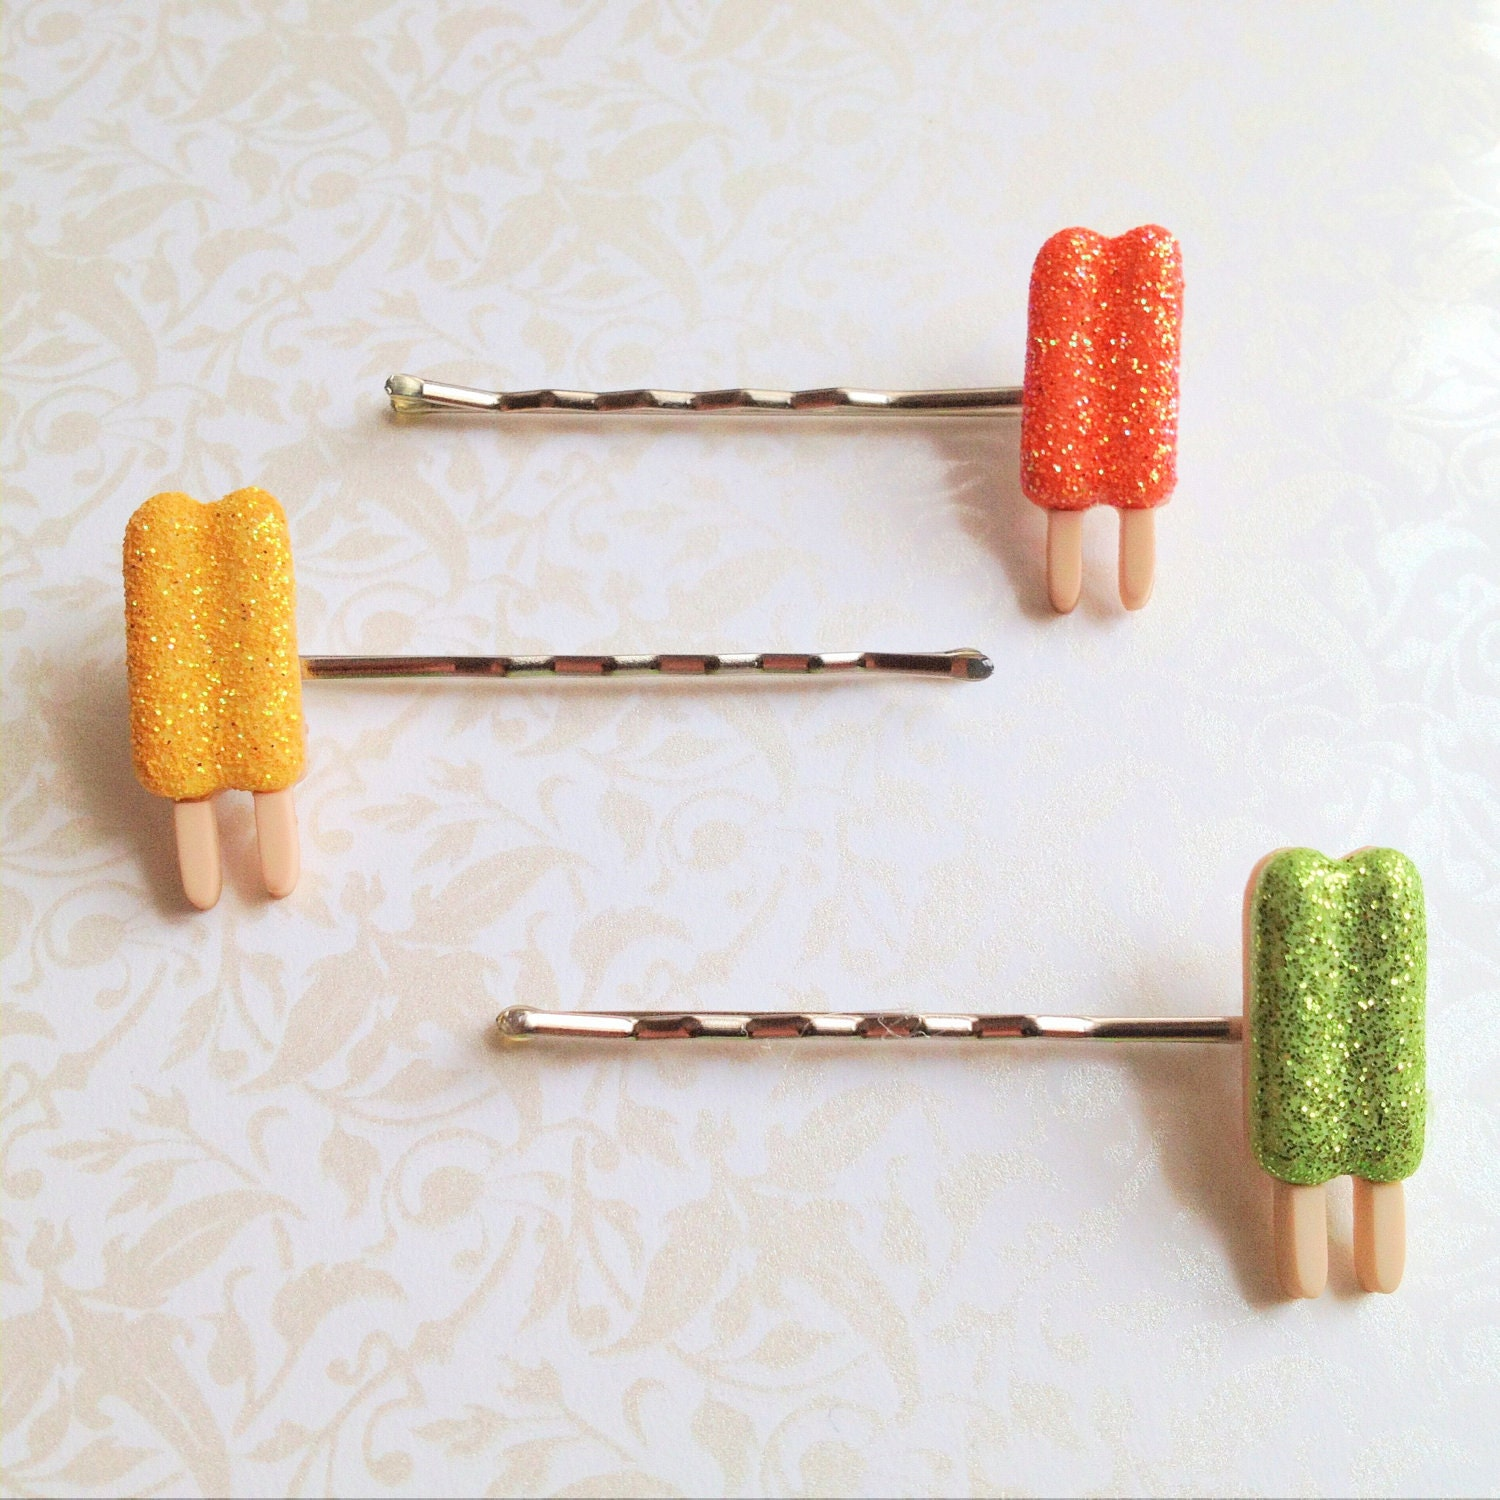 Glitter Popsicle Bobby Pins Set of Three- citrus colors, orange, green, yellow, silver tone bobbies, spring, summer, hair accessory, fun